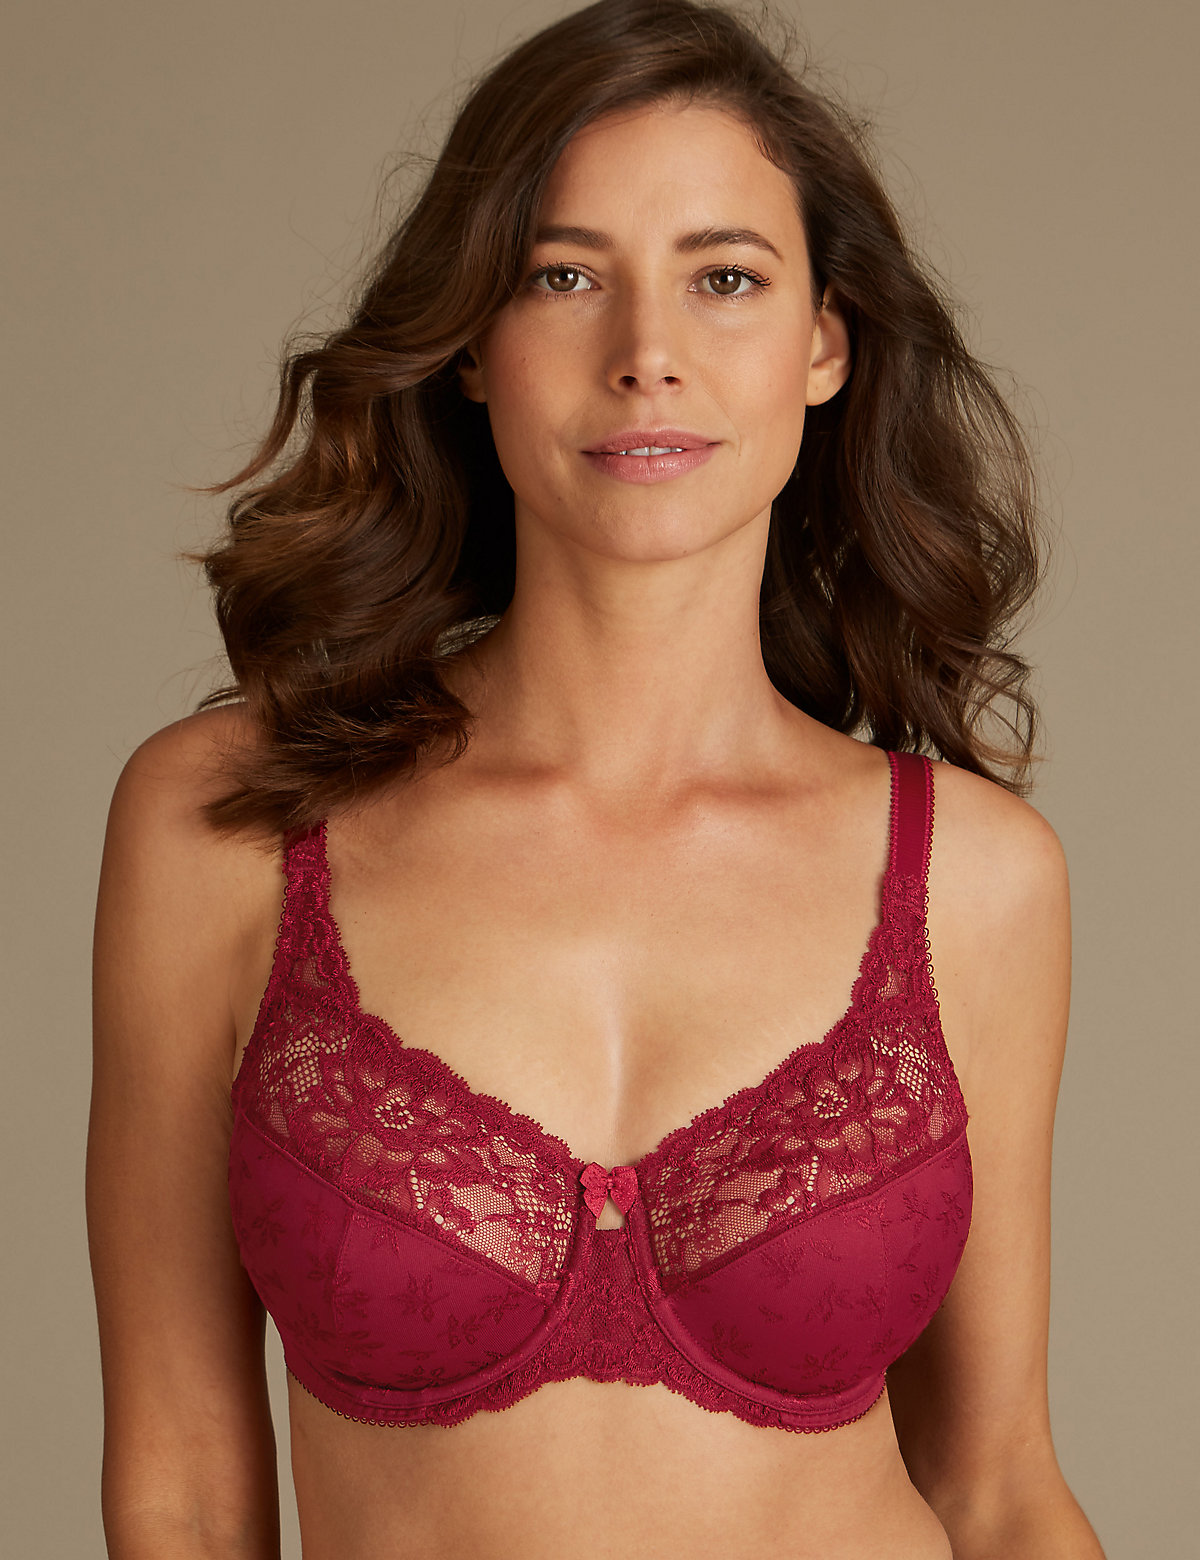 cef26d10fd9fb M S Collection Jacquard Lace Non-Padded Full Cup Bra DD-H